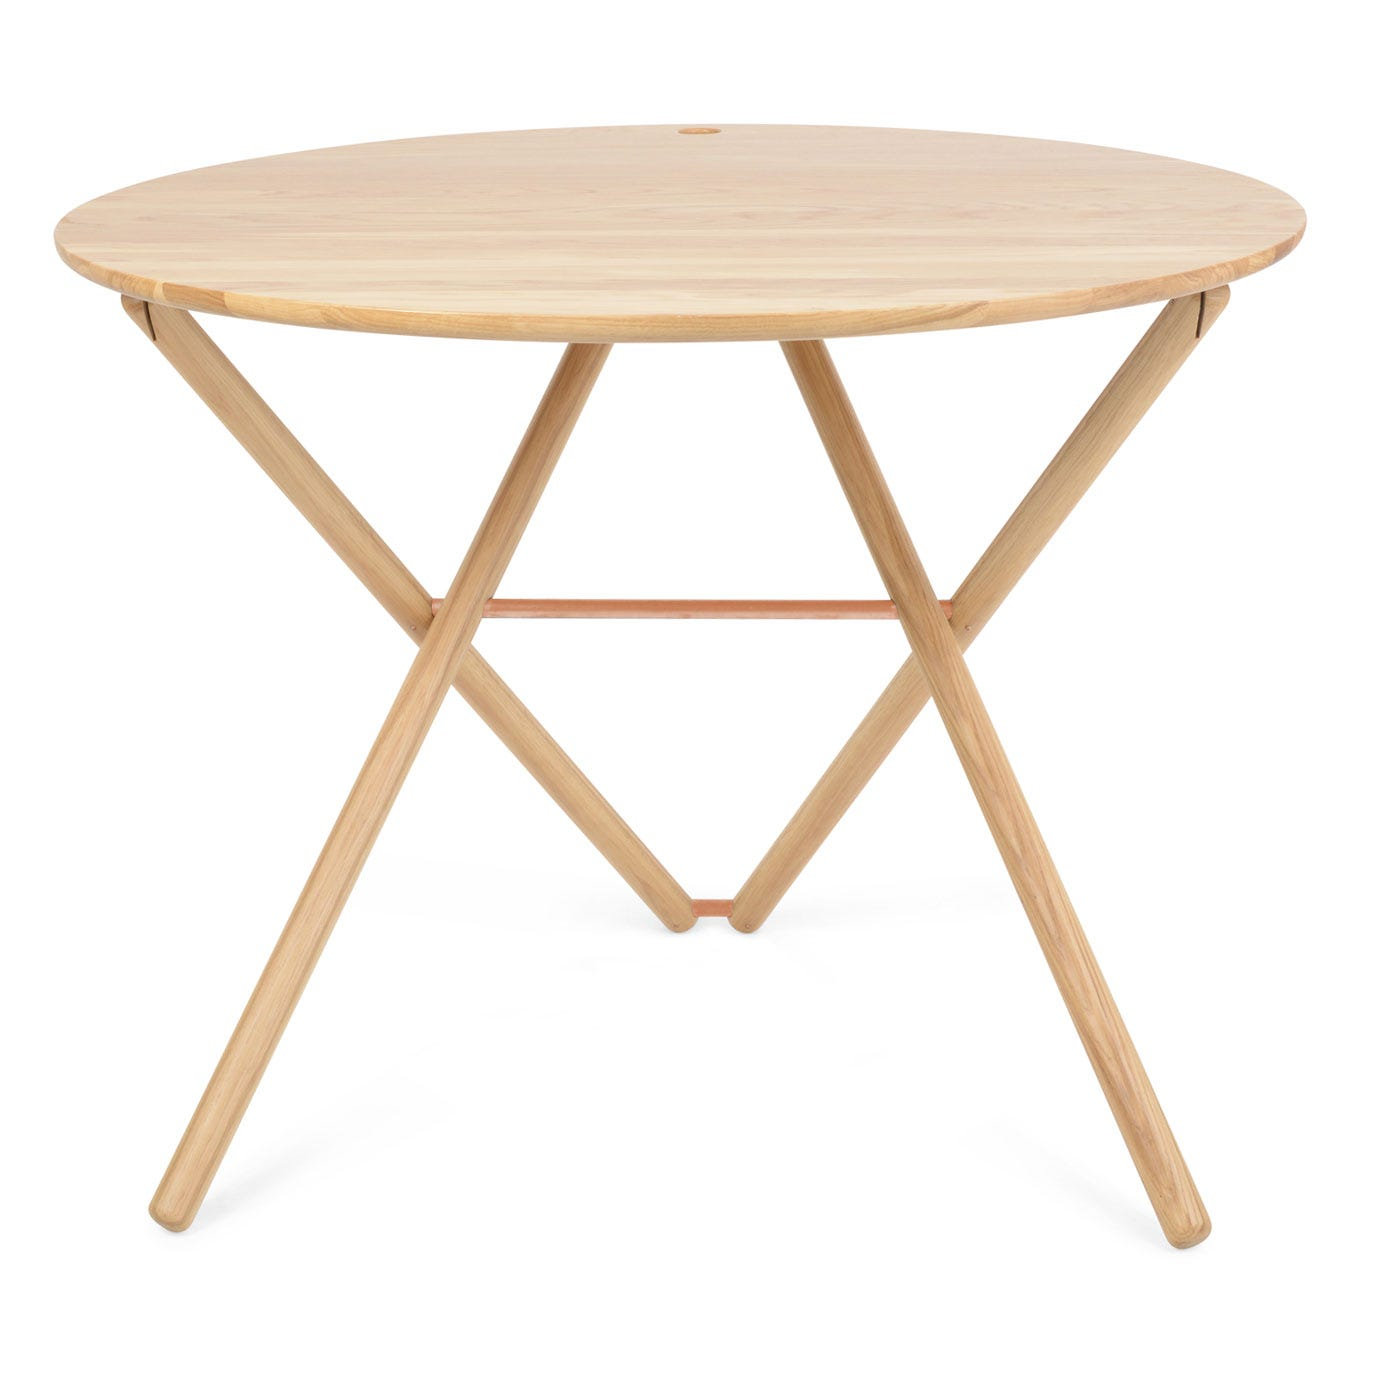 100 Heals Coffee Table Tower Coffee Table Explorer  : 2975484 from 45.32.79.15 size 1400 x 1400 jpeg 106kB